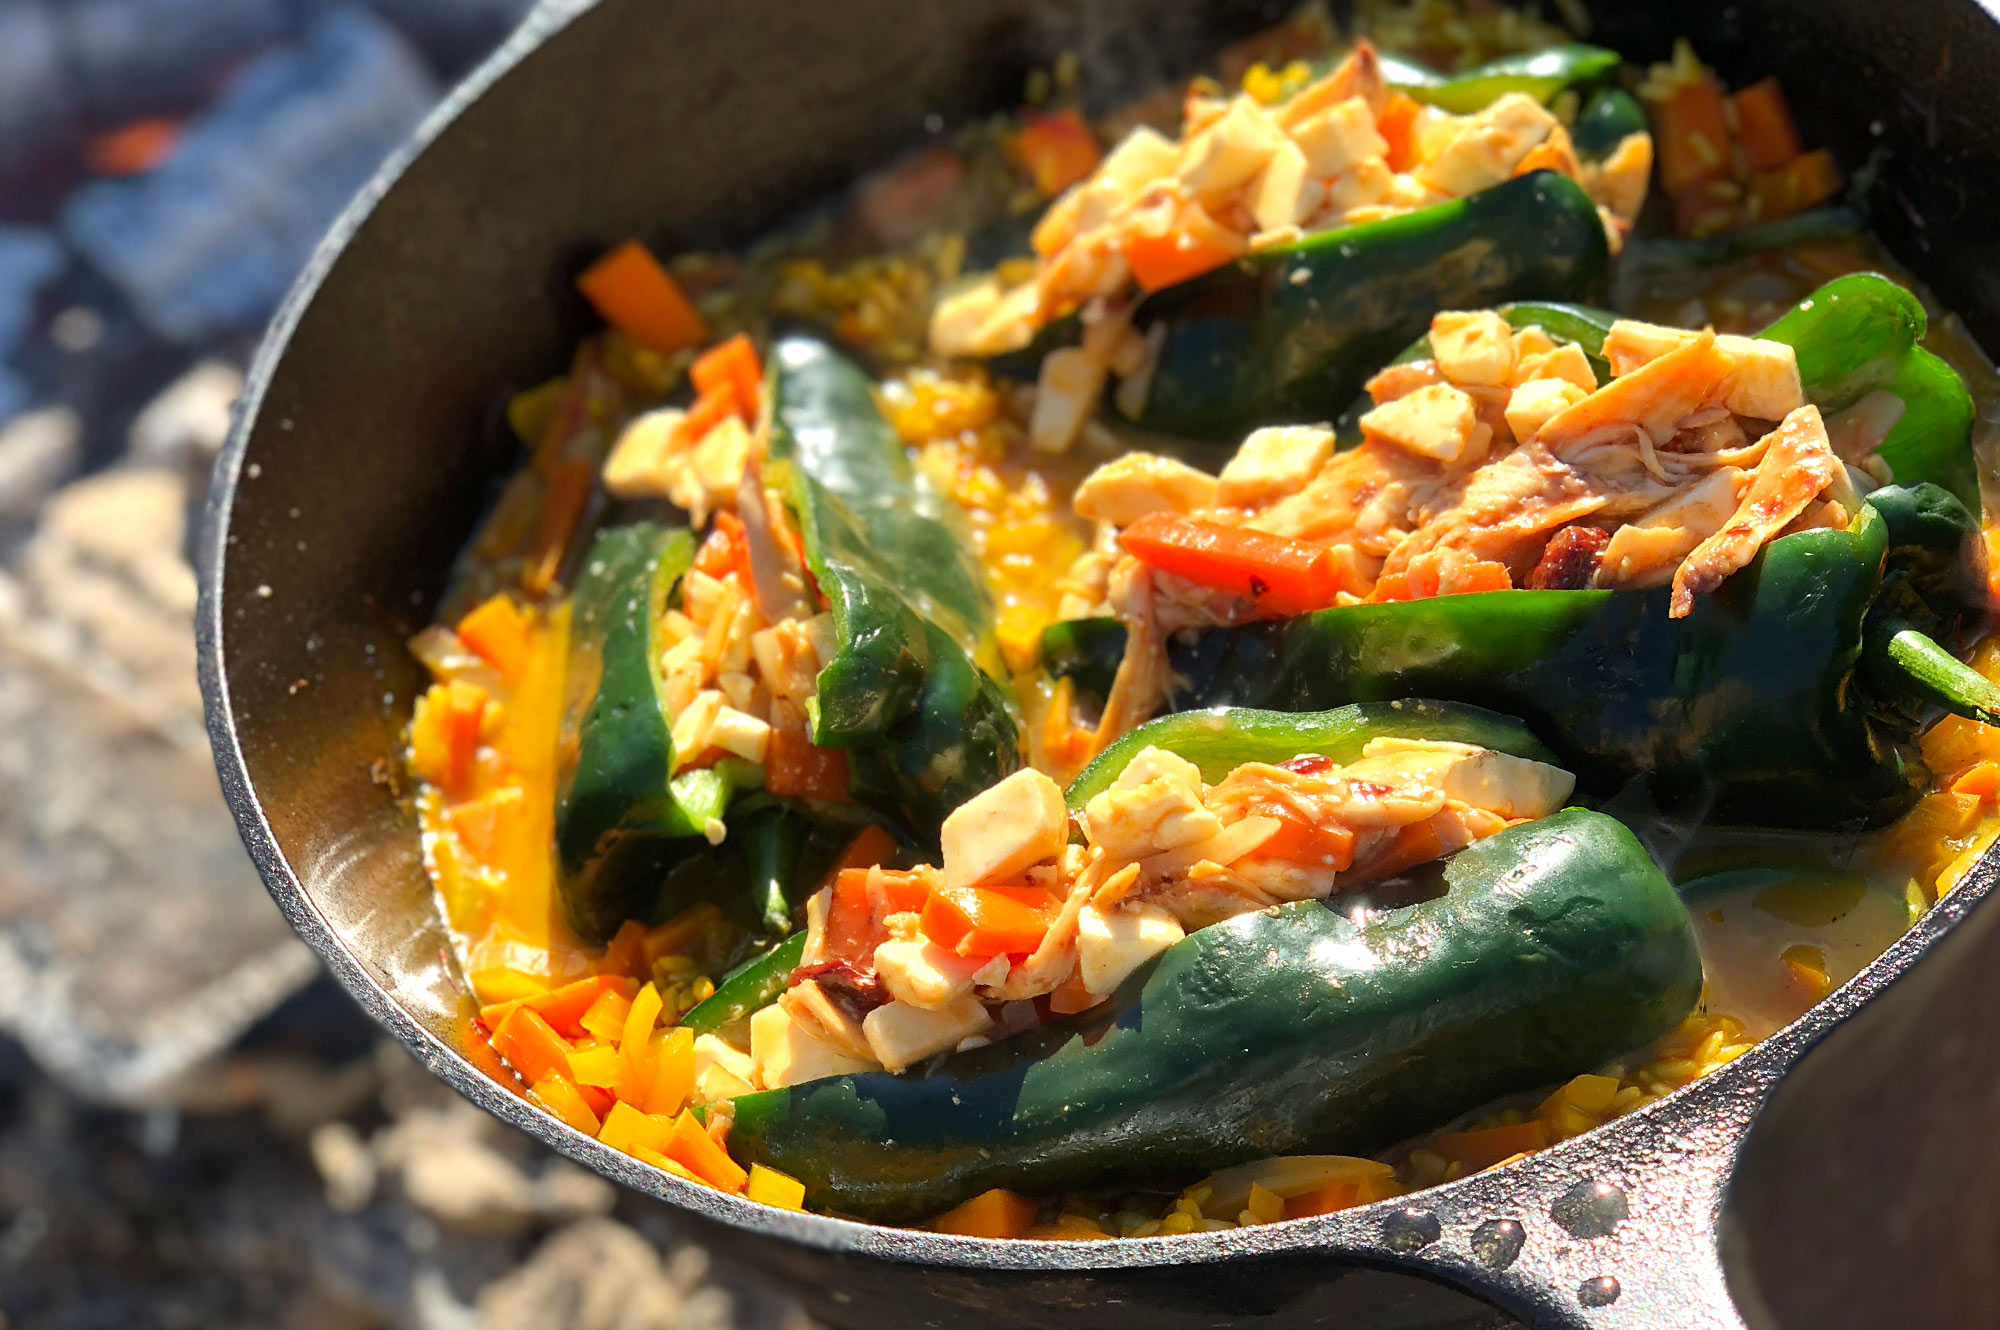 Chili chicken rellenos over coals